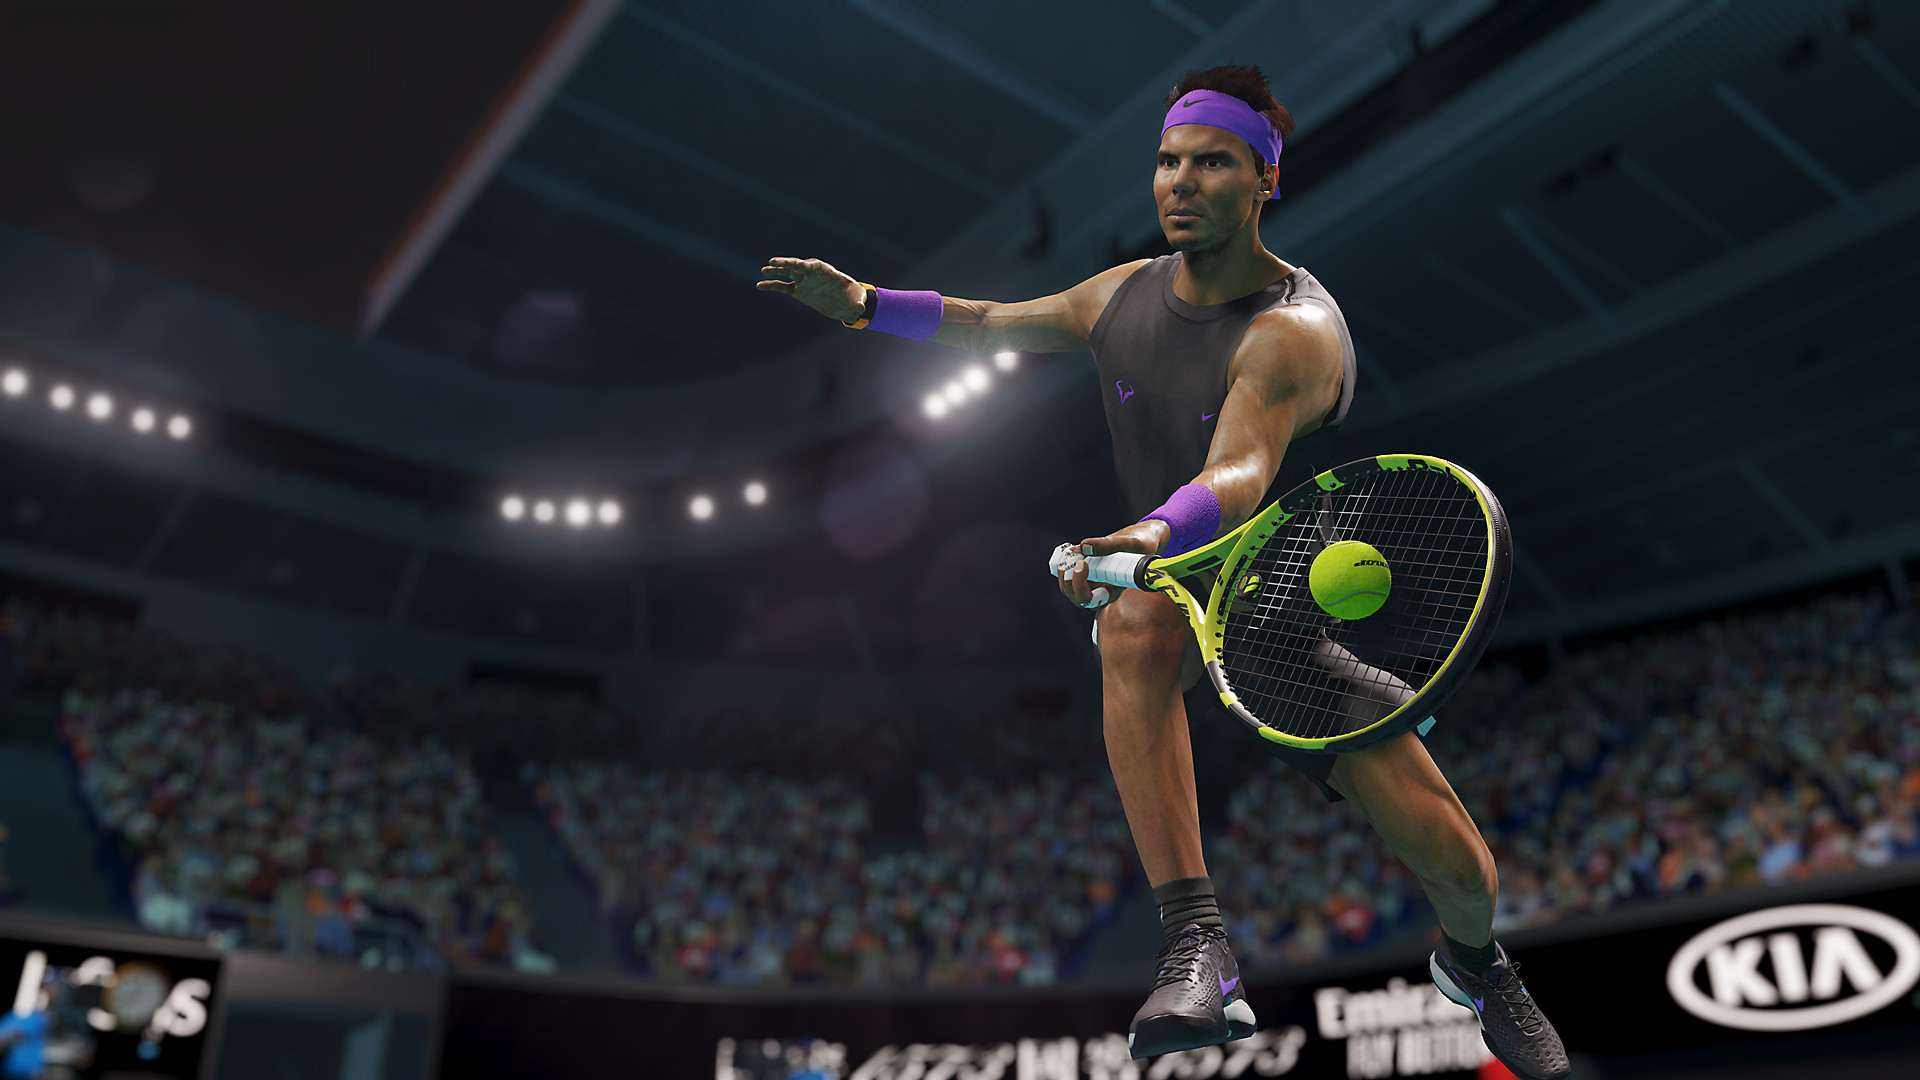 AO Tennis 2 in Action